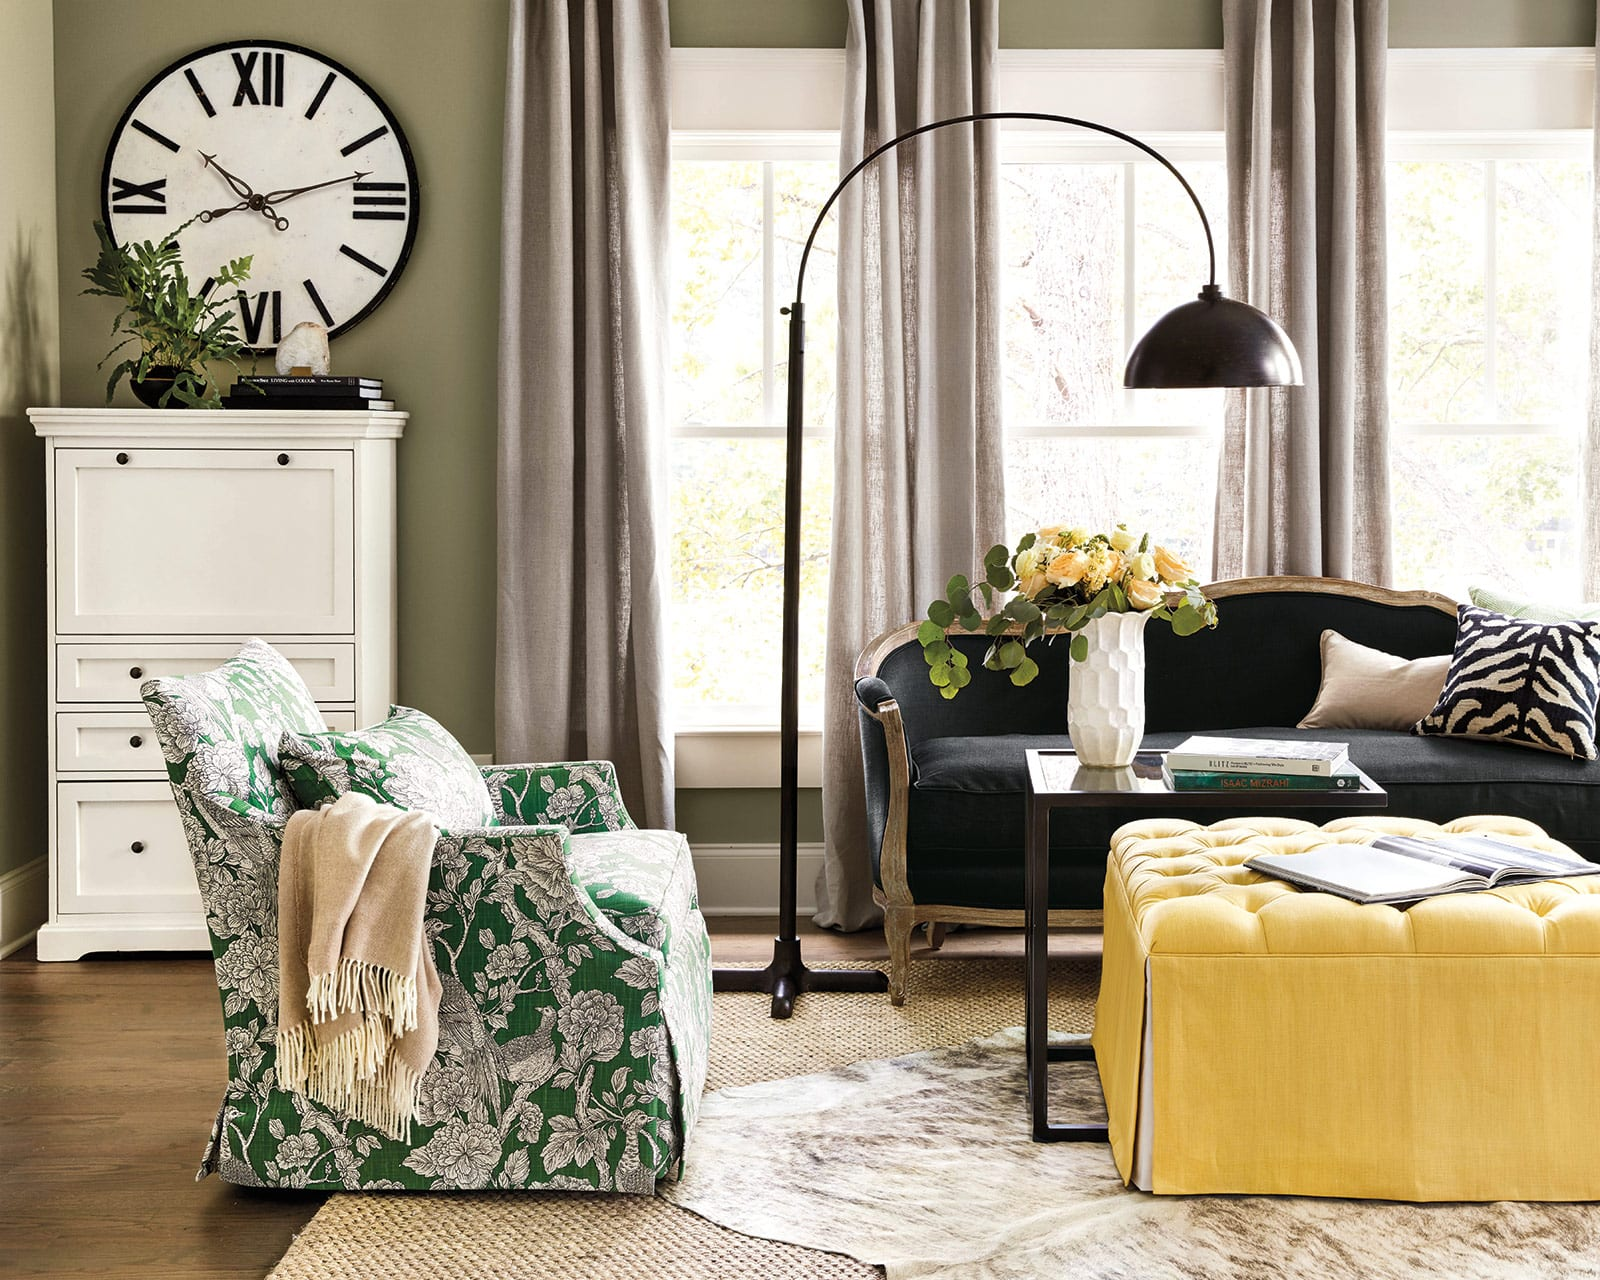 8 Reasons We Love Decorating With Black And White How To Decorate